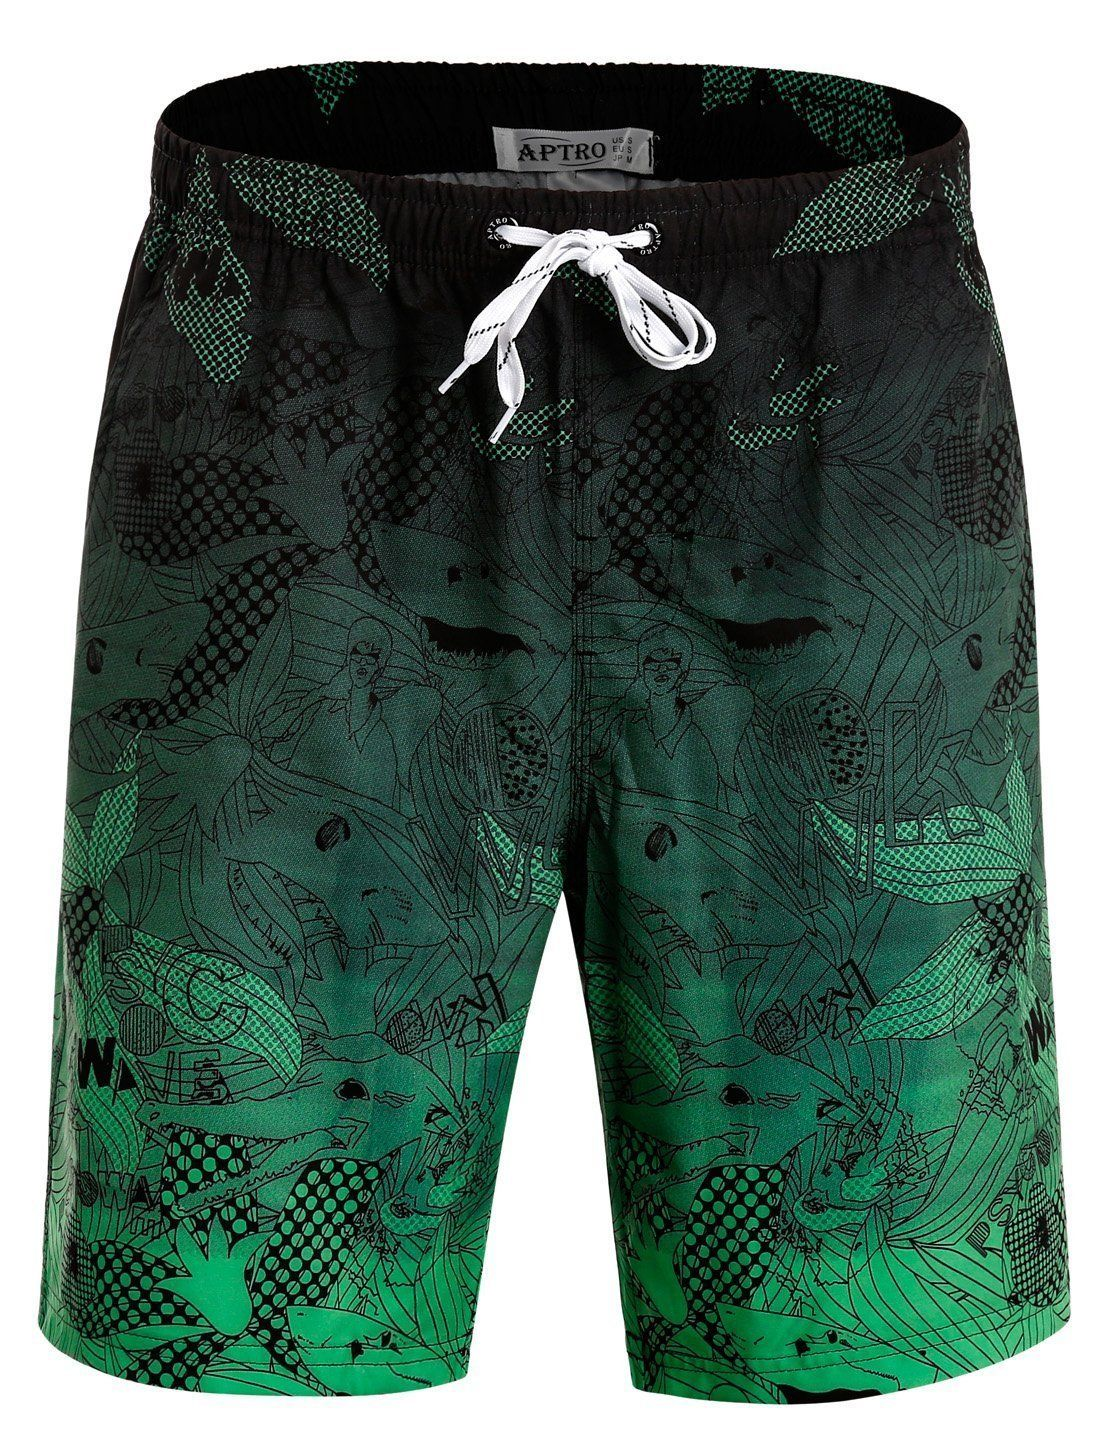 Boughtagain Awesome Goods You Bought It Again Mens Swim Trunks Mens Swimwear Trunks Man Swimming